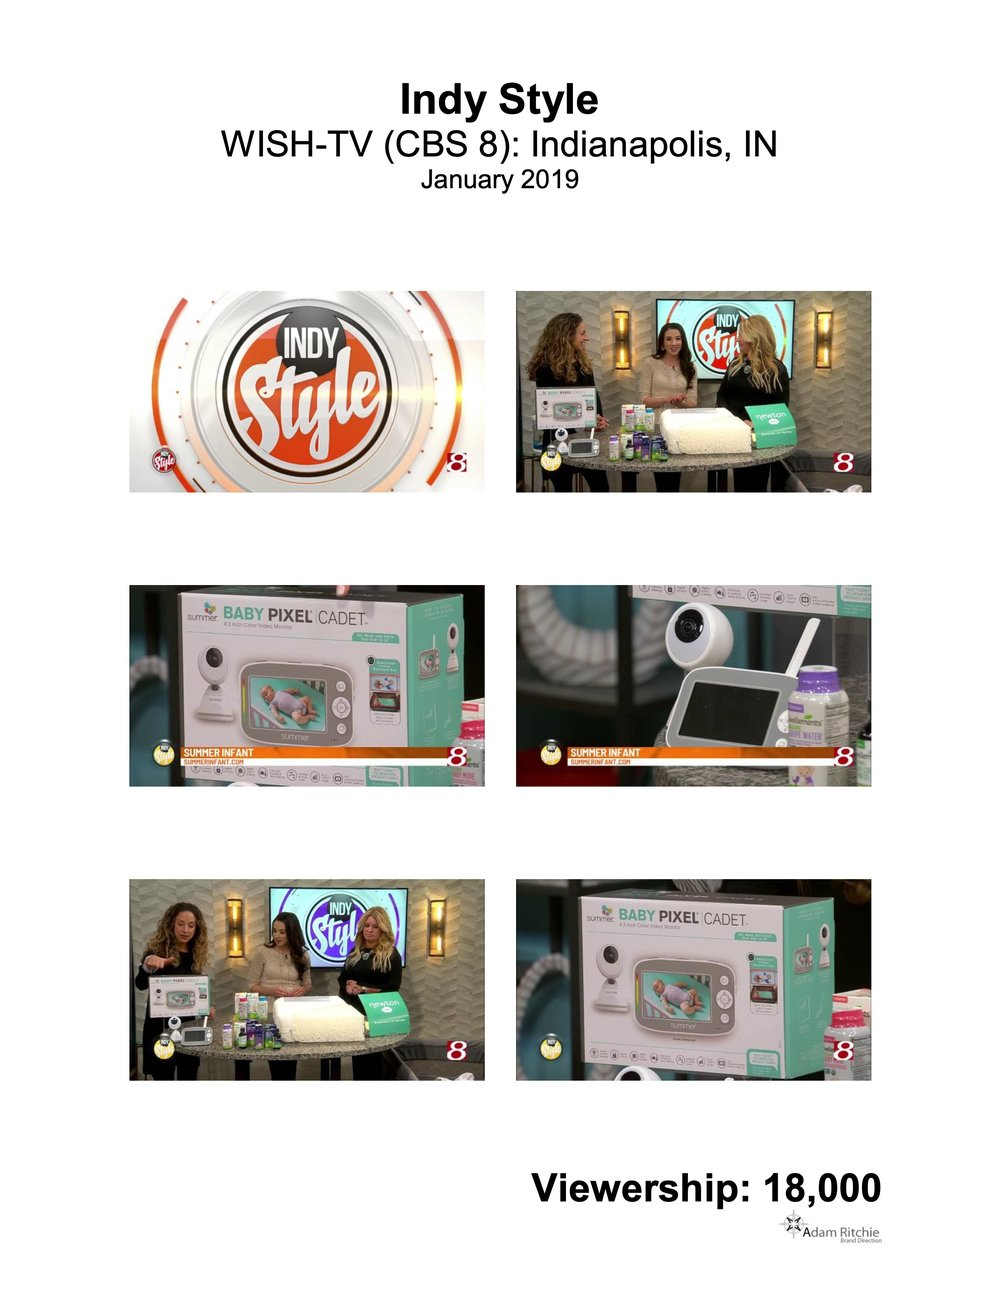 2019.01.28_WISH-TV (CBS 3) Indianapolis, Indy Style_Summer Infant Baby Pixel Cadet Video Monitor.jpeg